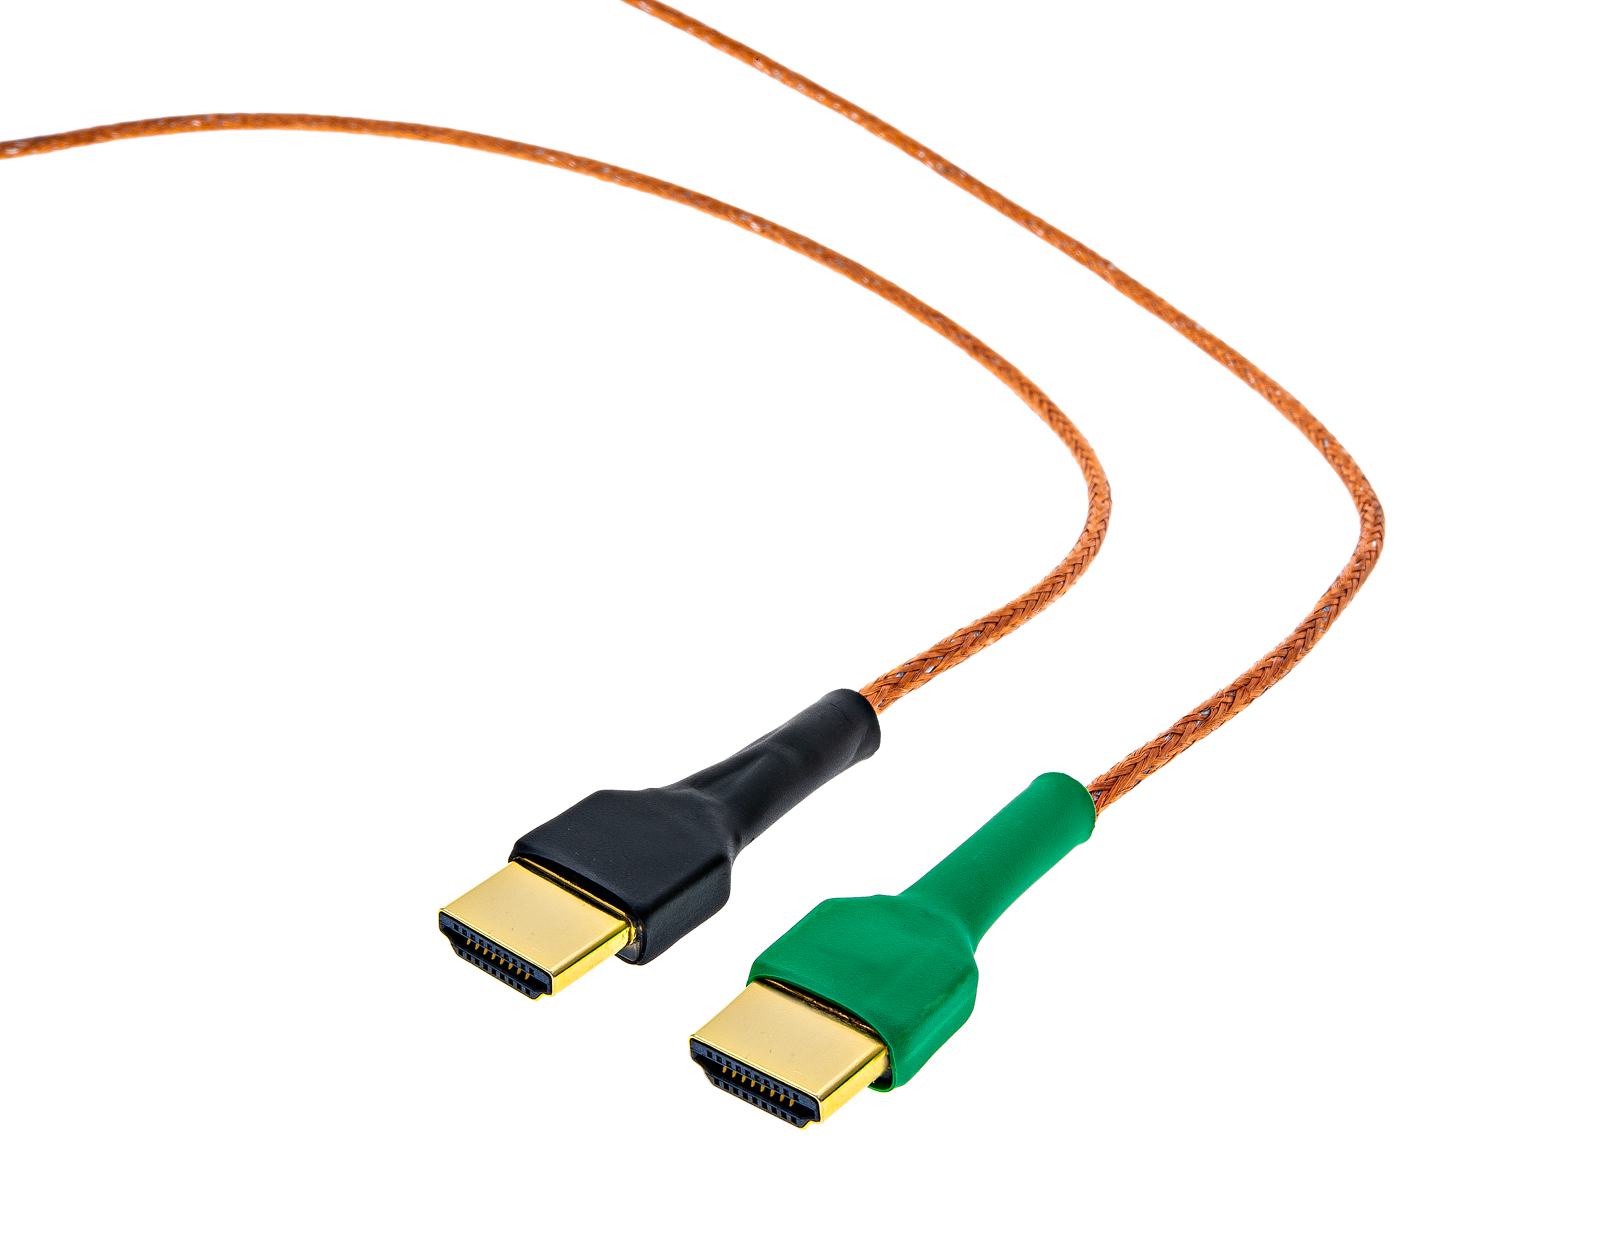 Vivlink 3 HDMI Cable : NEW!